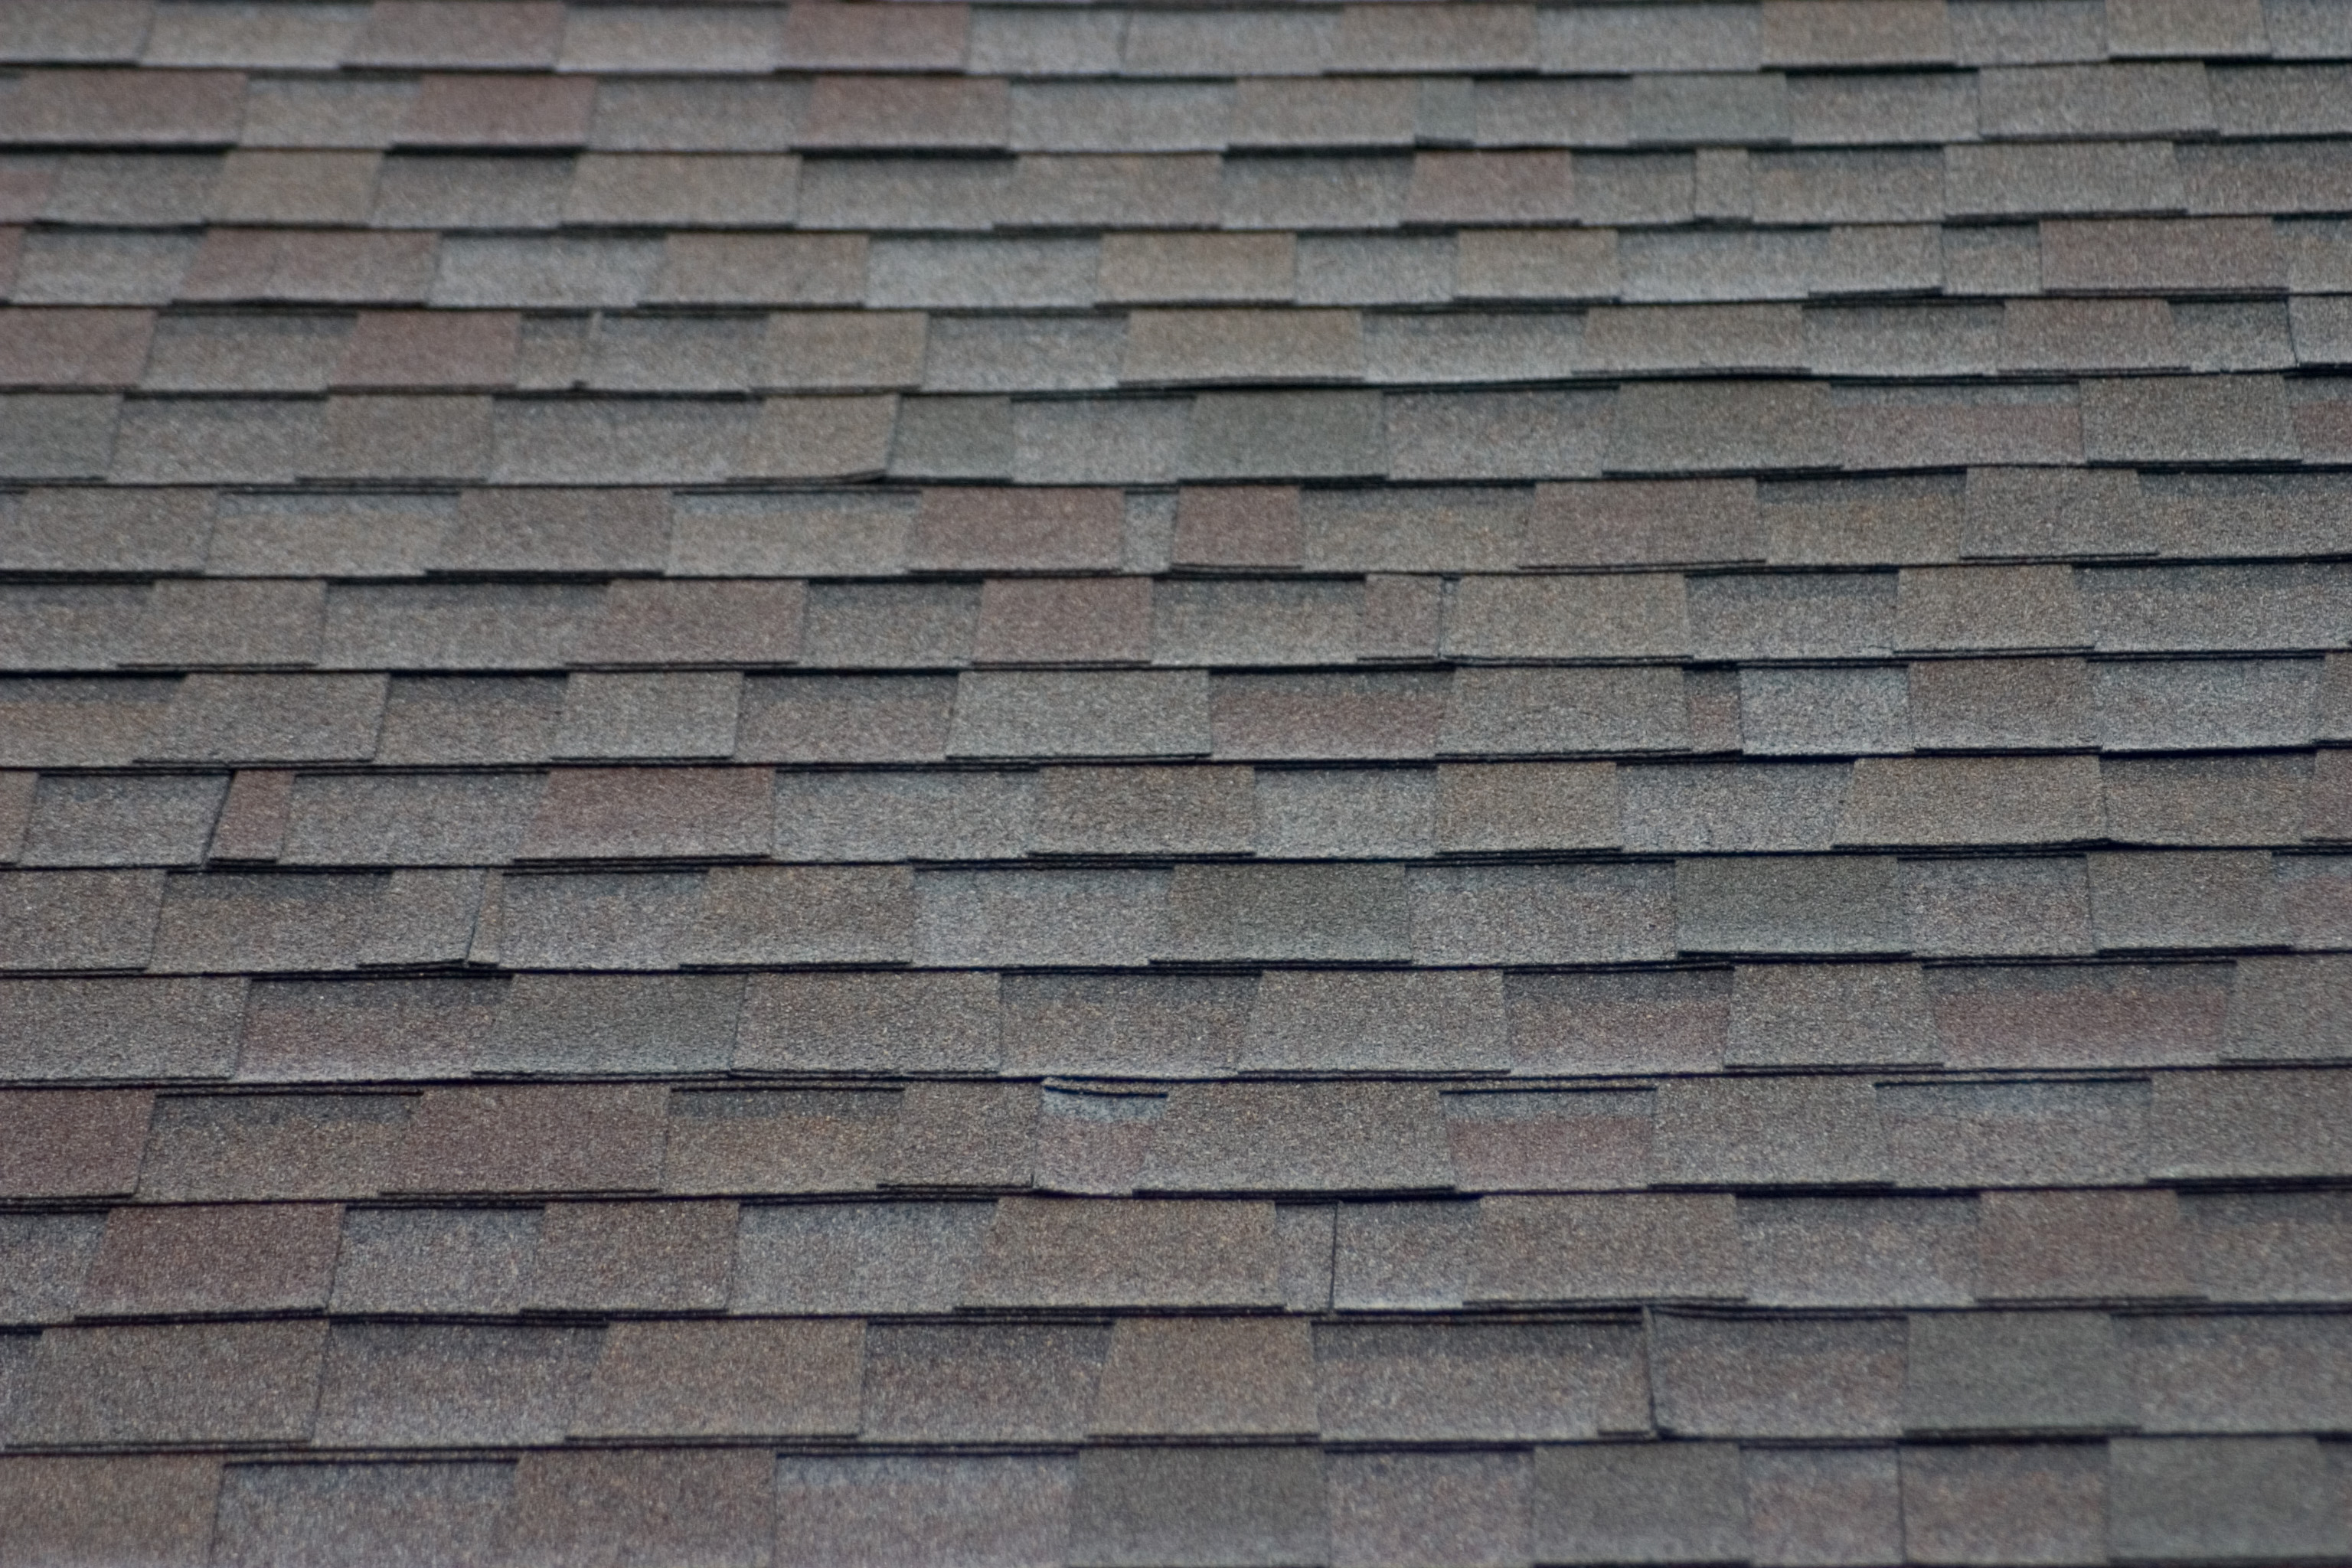 A roof made of gray asphalt shingles